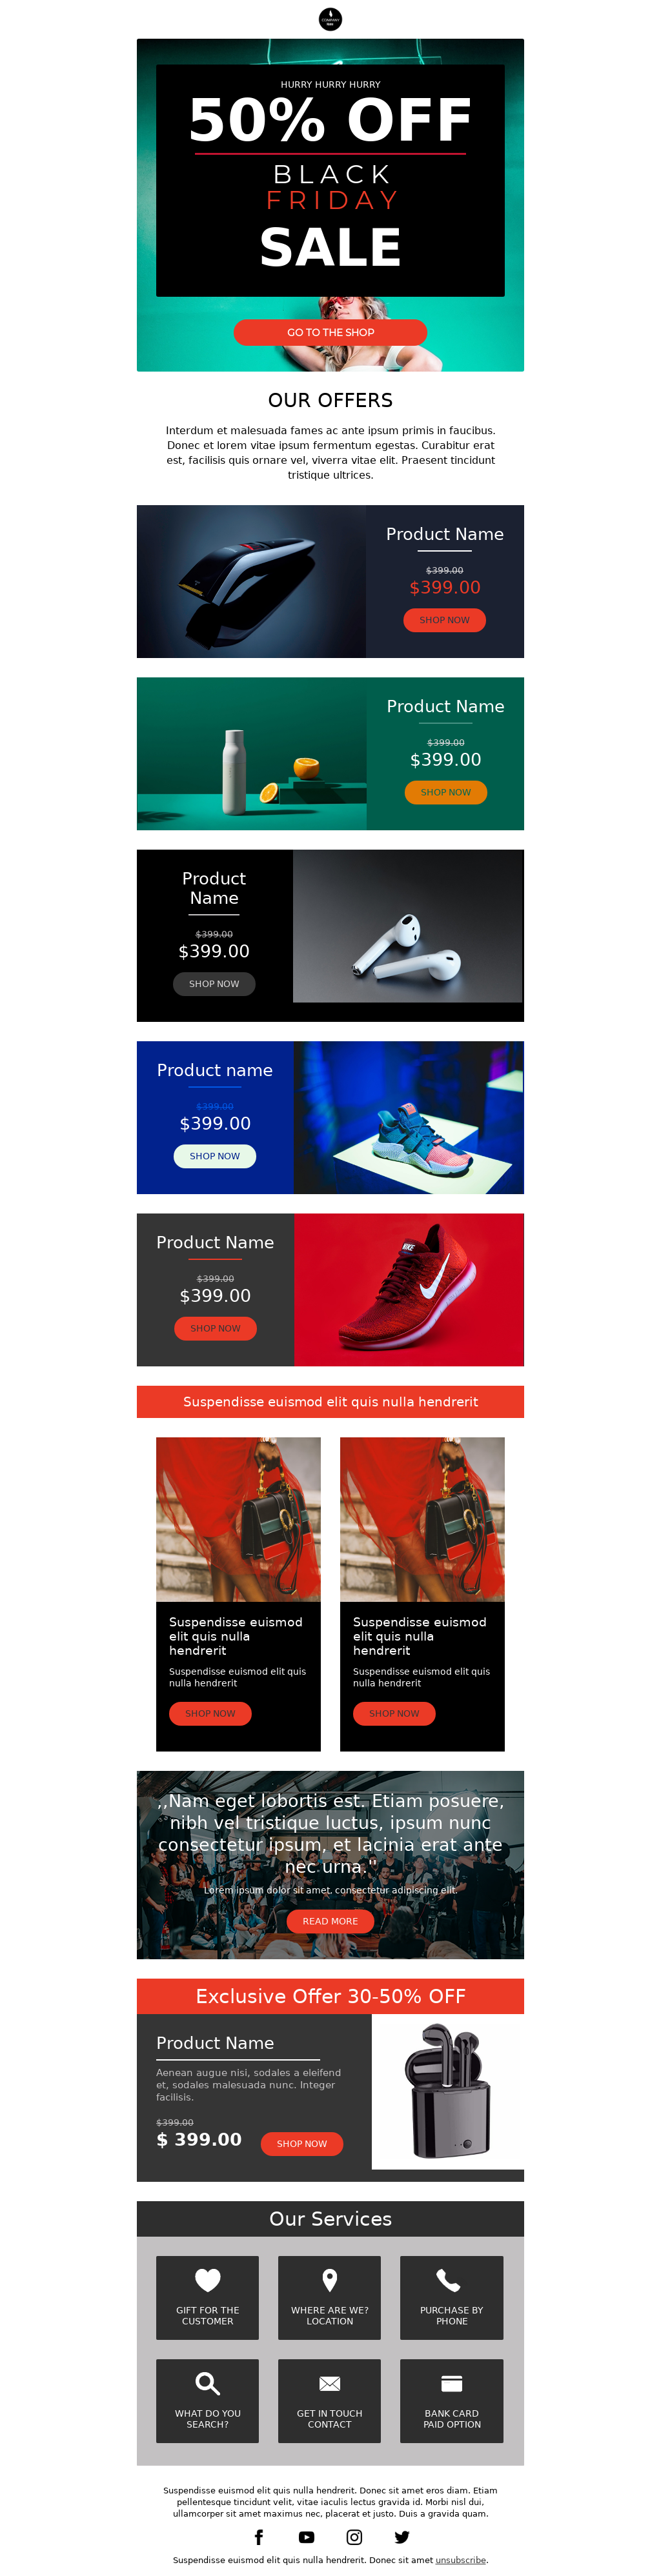 Colorful black friday product promotion email template